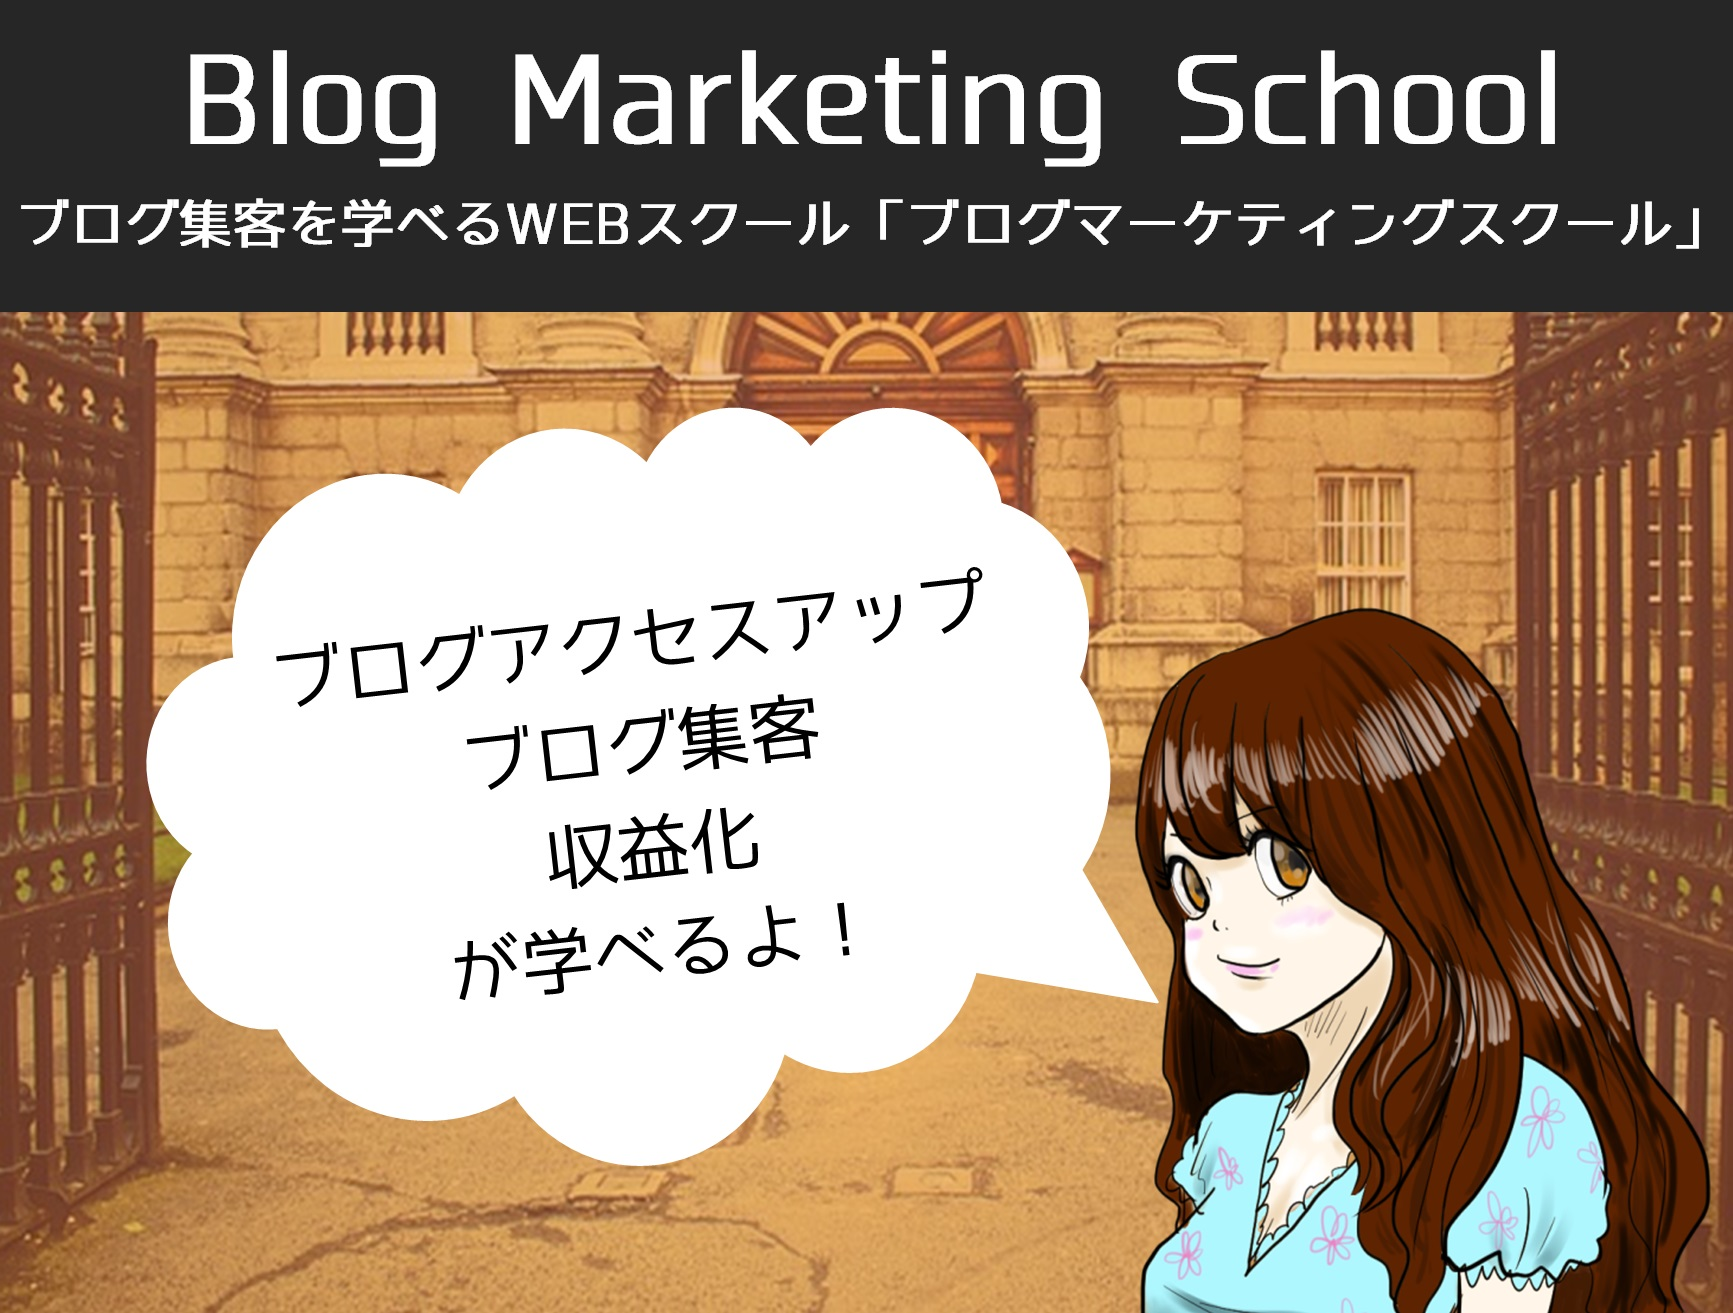 BlogMarketingSchoolアイキャッチ